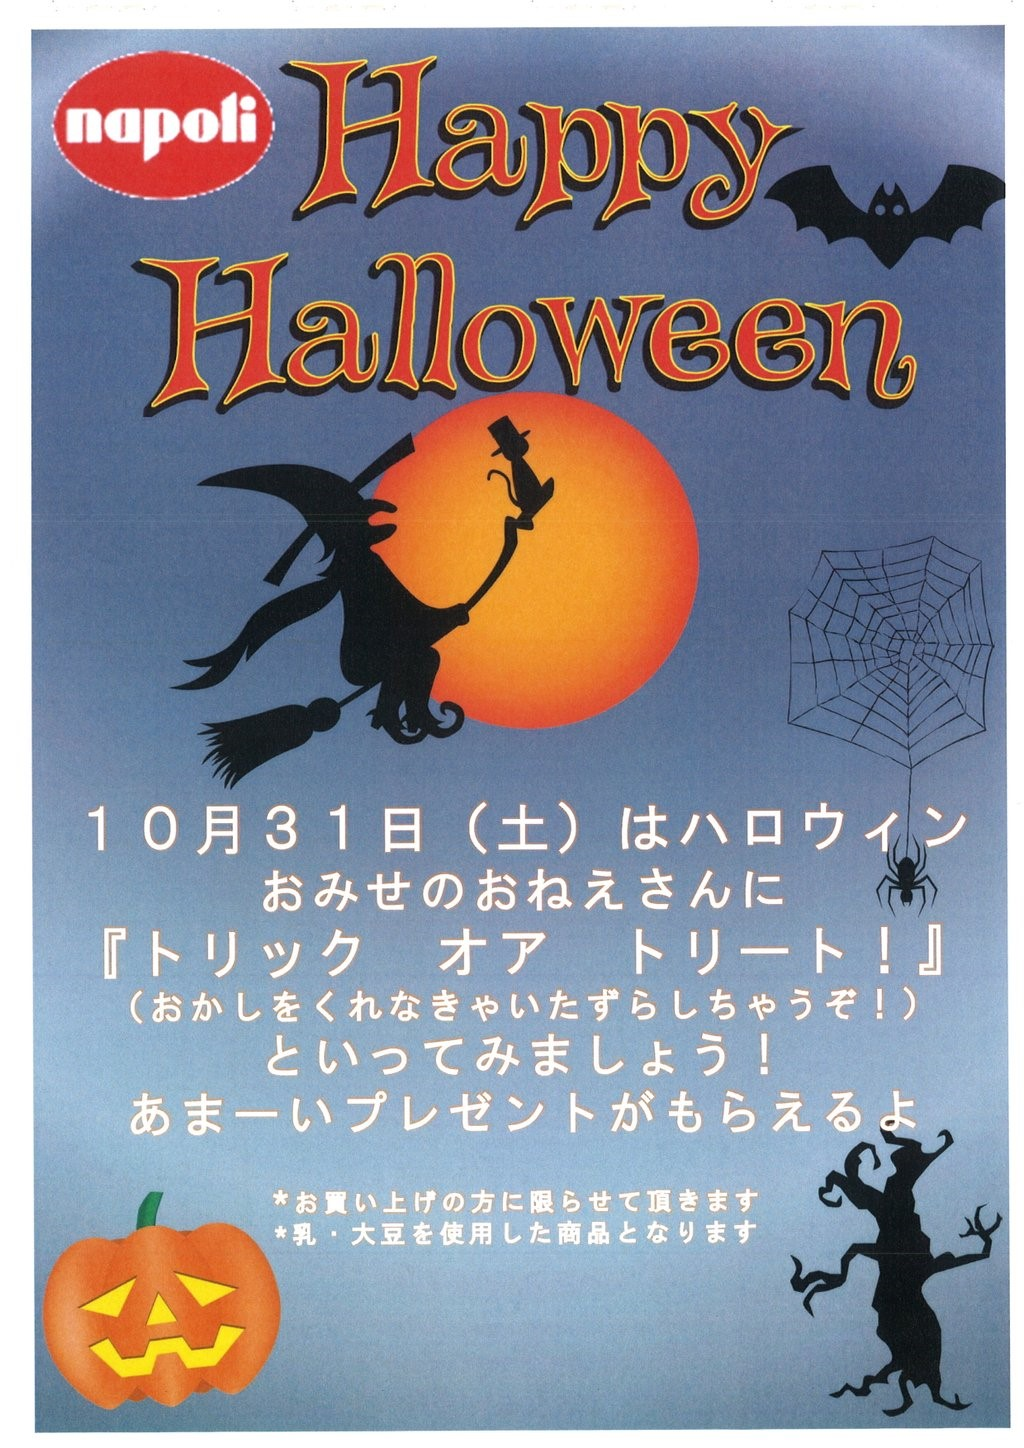 「SAY TRICK OR TREAT」キャンペーン